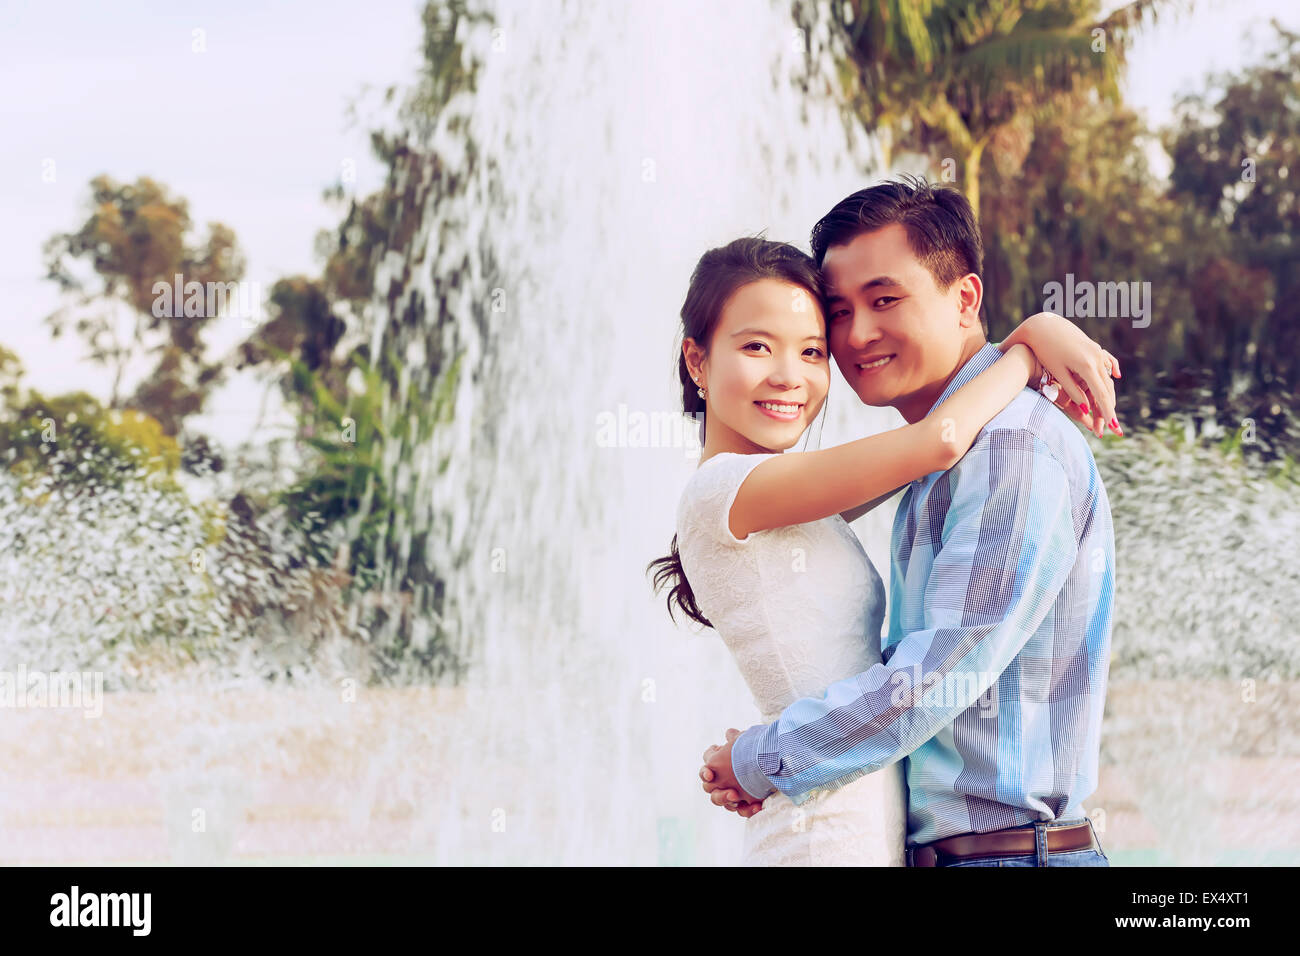 Happy Young Couple Photo Stock